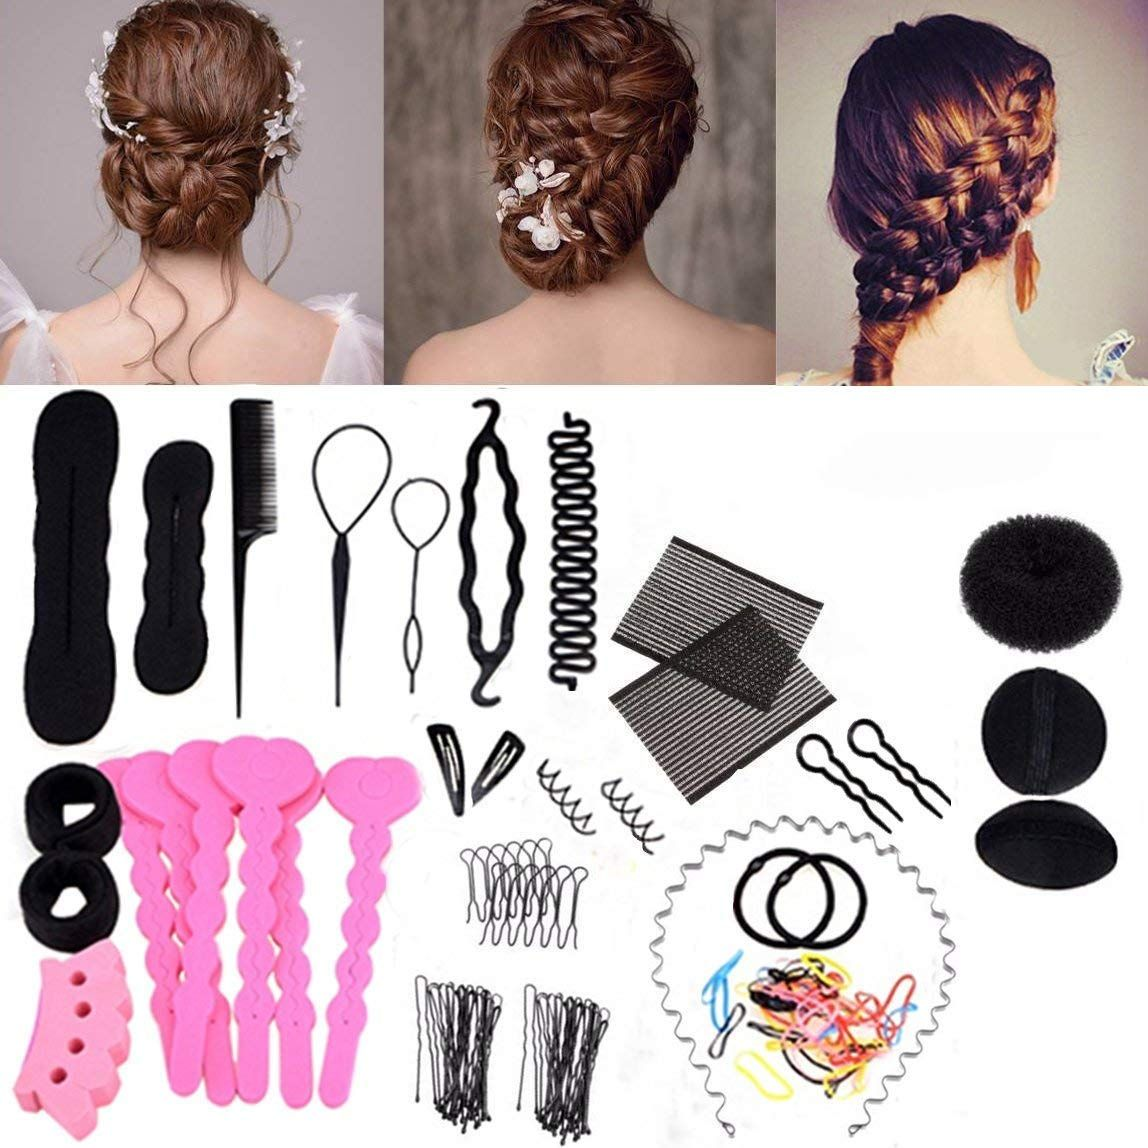 Xidaje Exquisite 20 Types Hair Styling Clip Hairpin Hair Comb Band Twist Tool Bun Maker We Do Hope You Actually Like Hair Braiding Tool Hair Pins Hair Tools